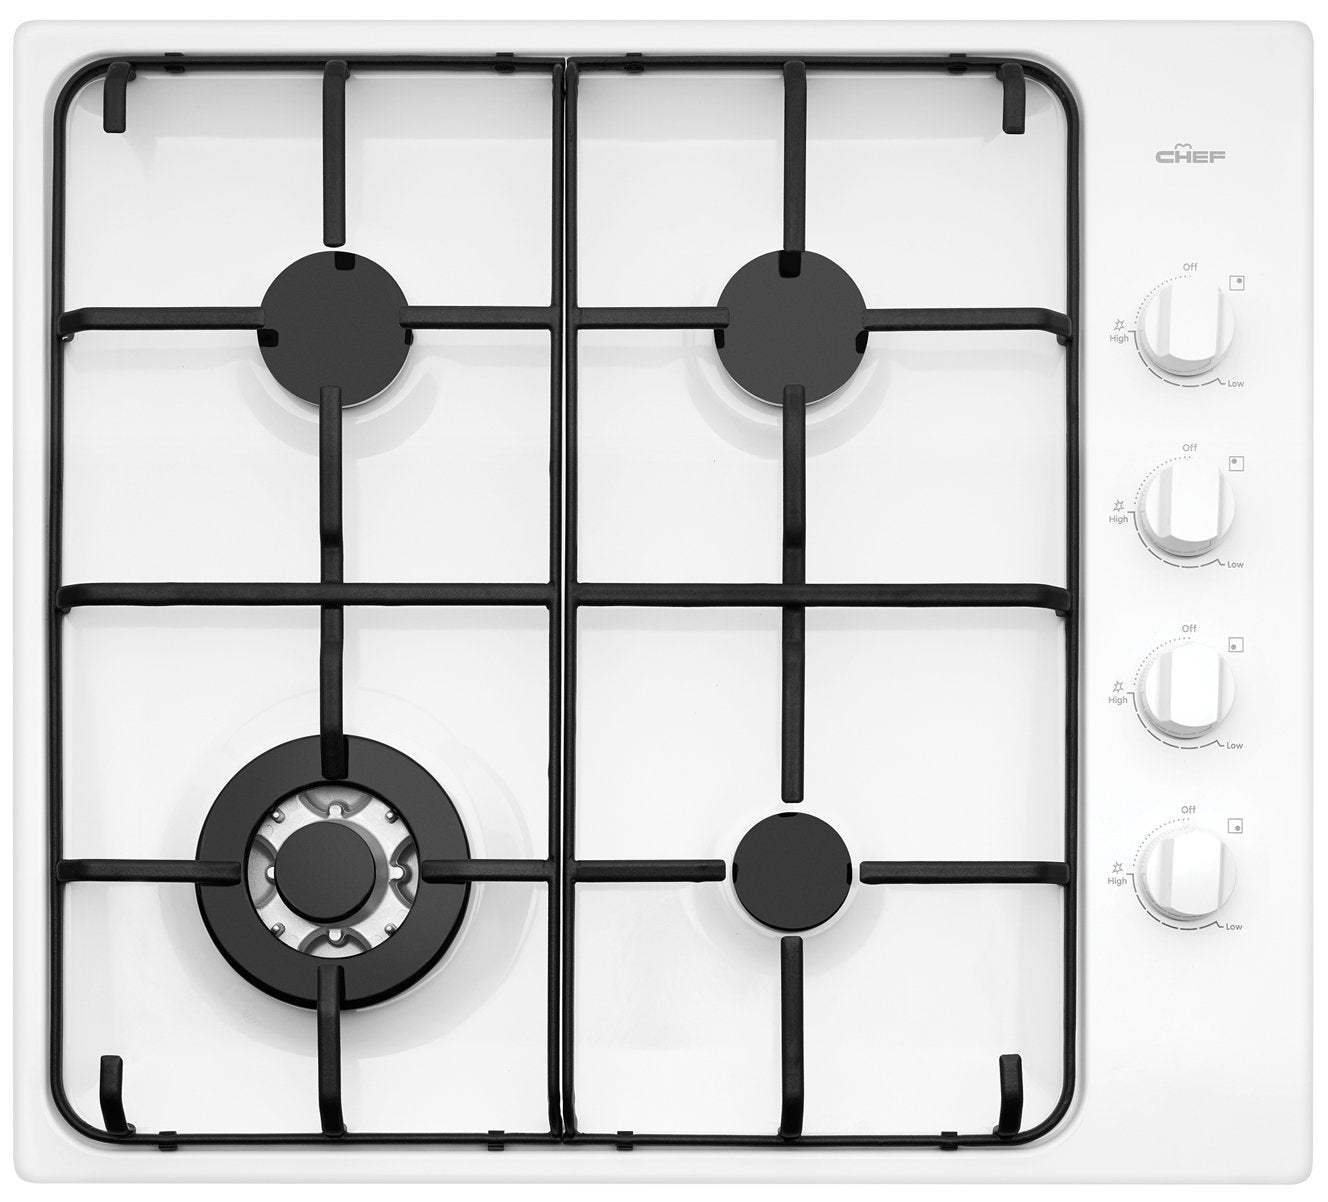 Chef CHG646WB 60cm 4 Burner White Gas Cooktop